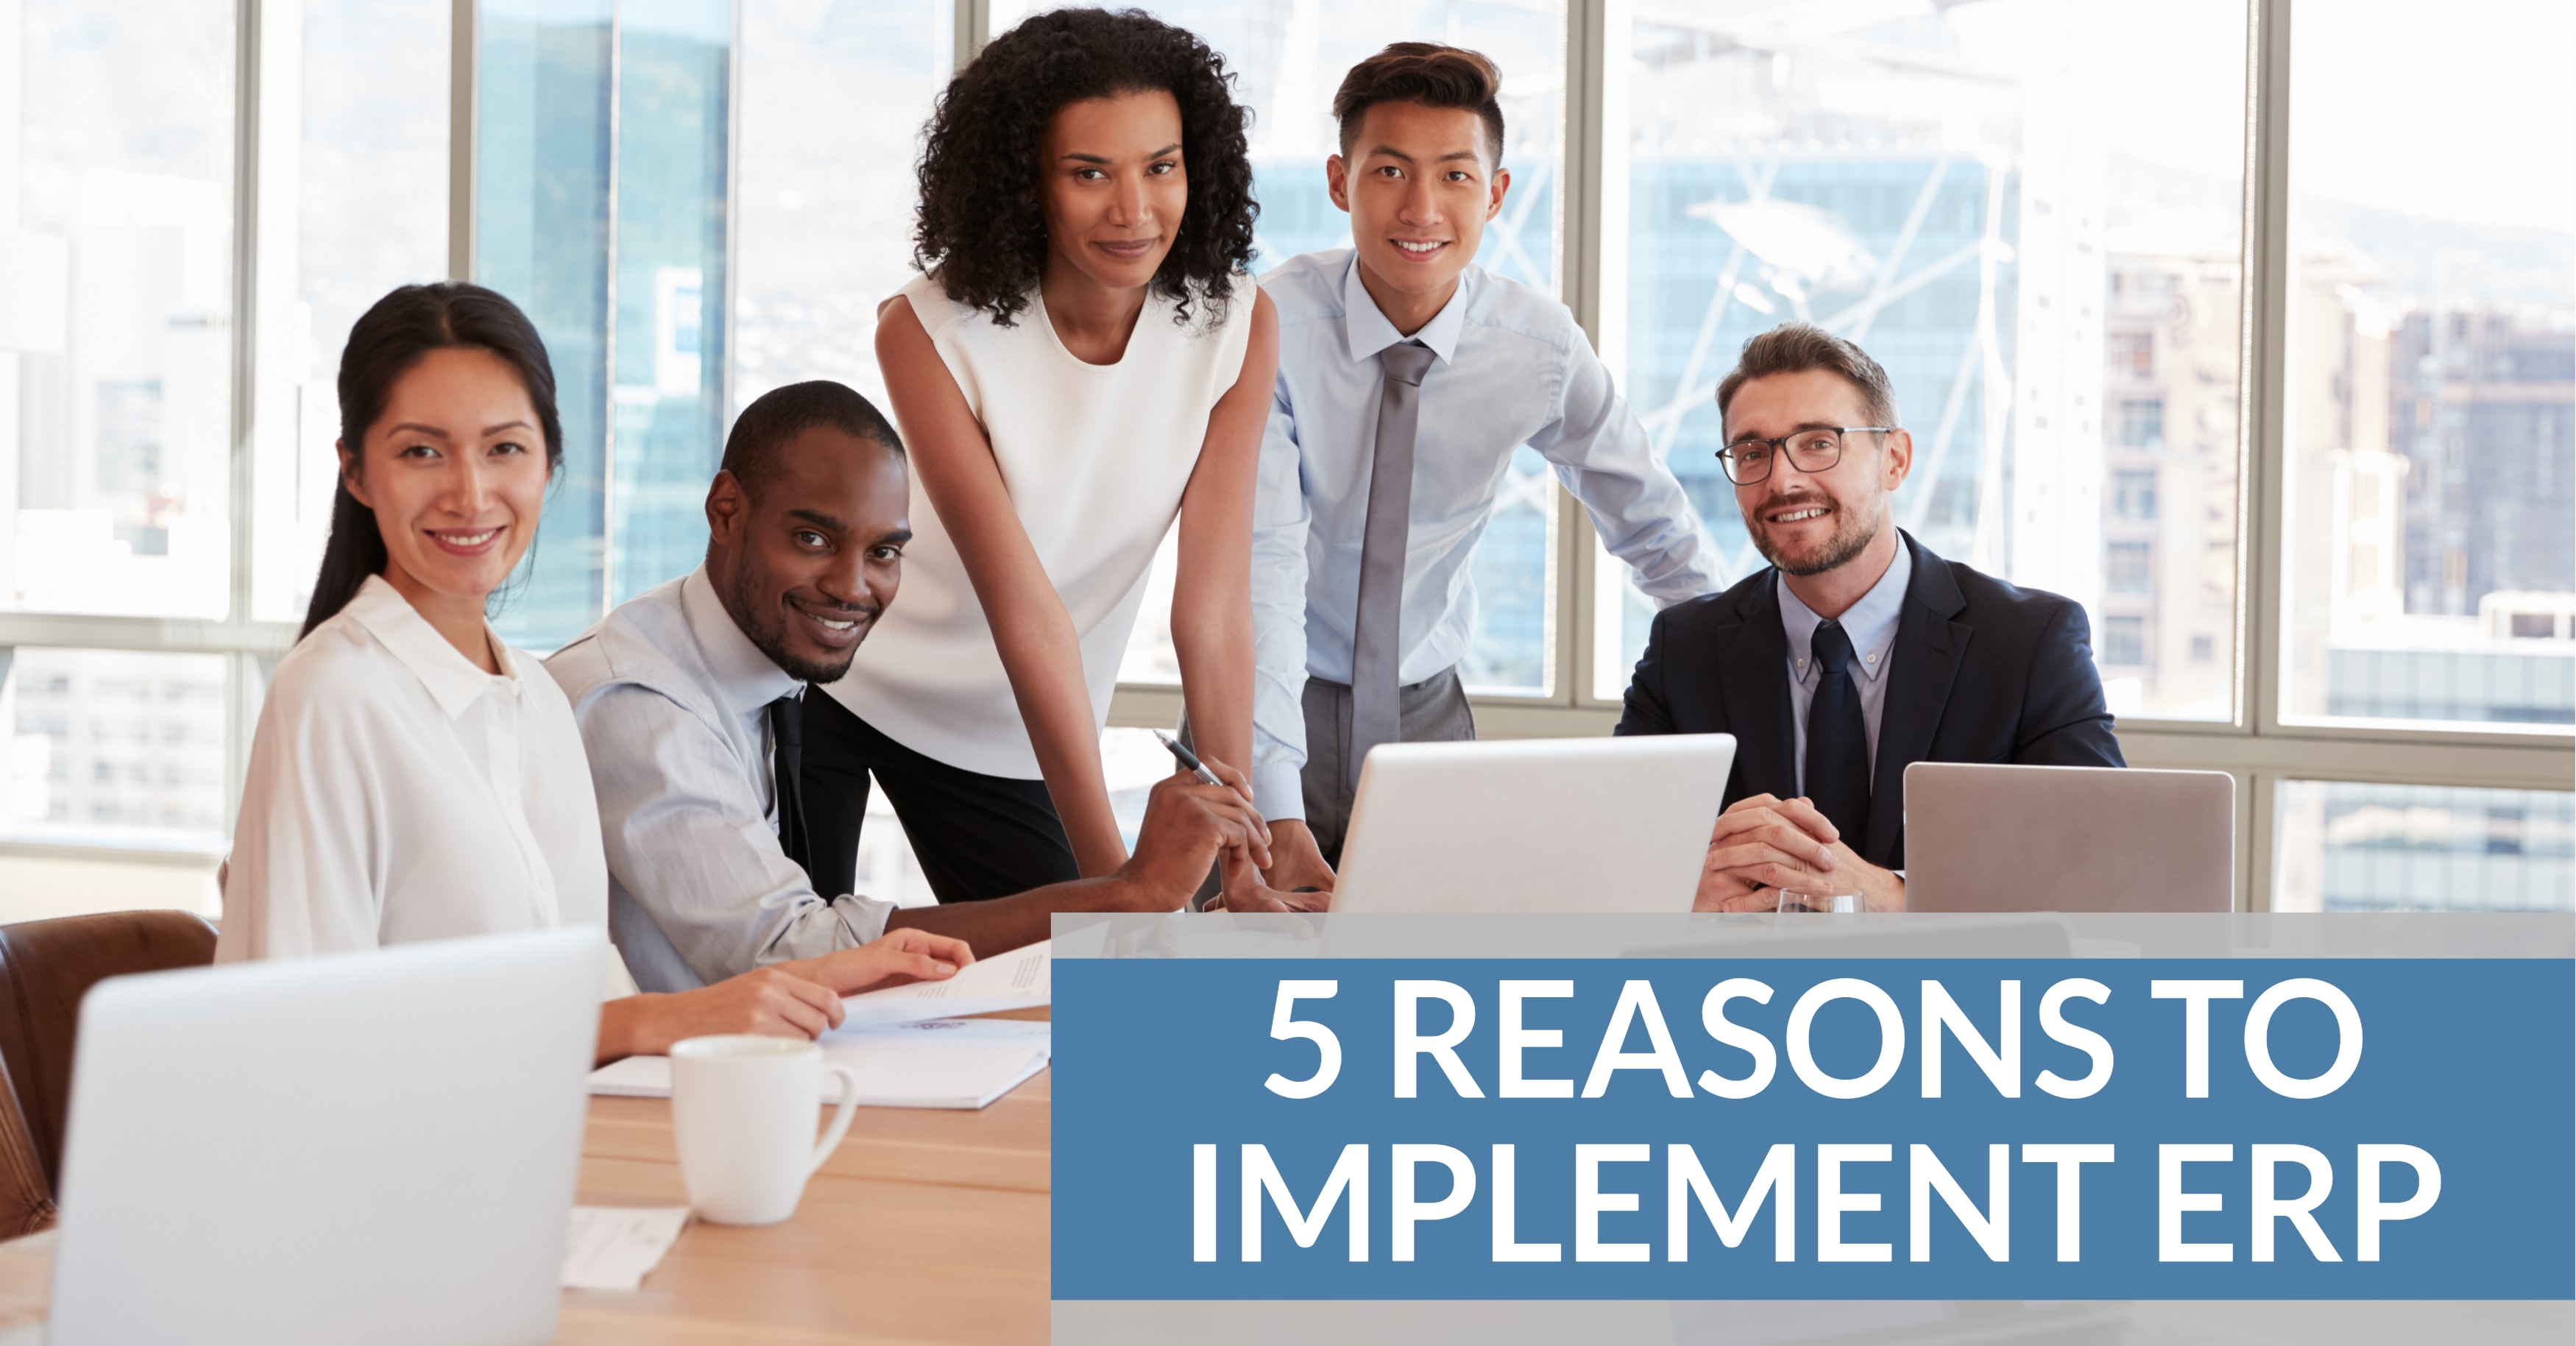 Reasons Implement ERP